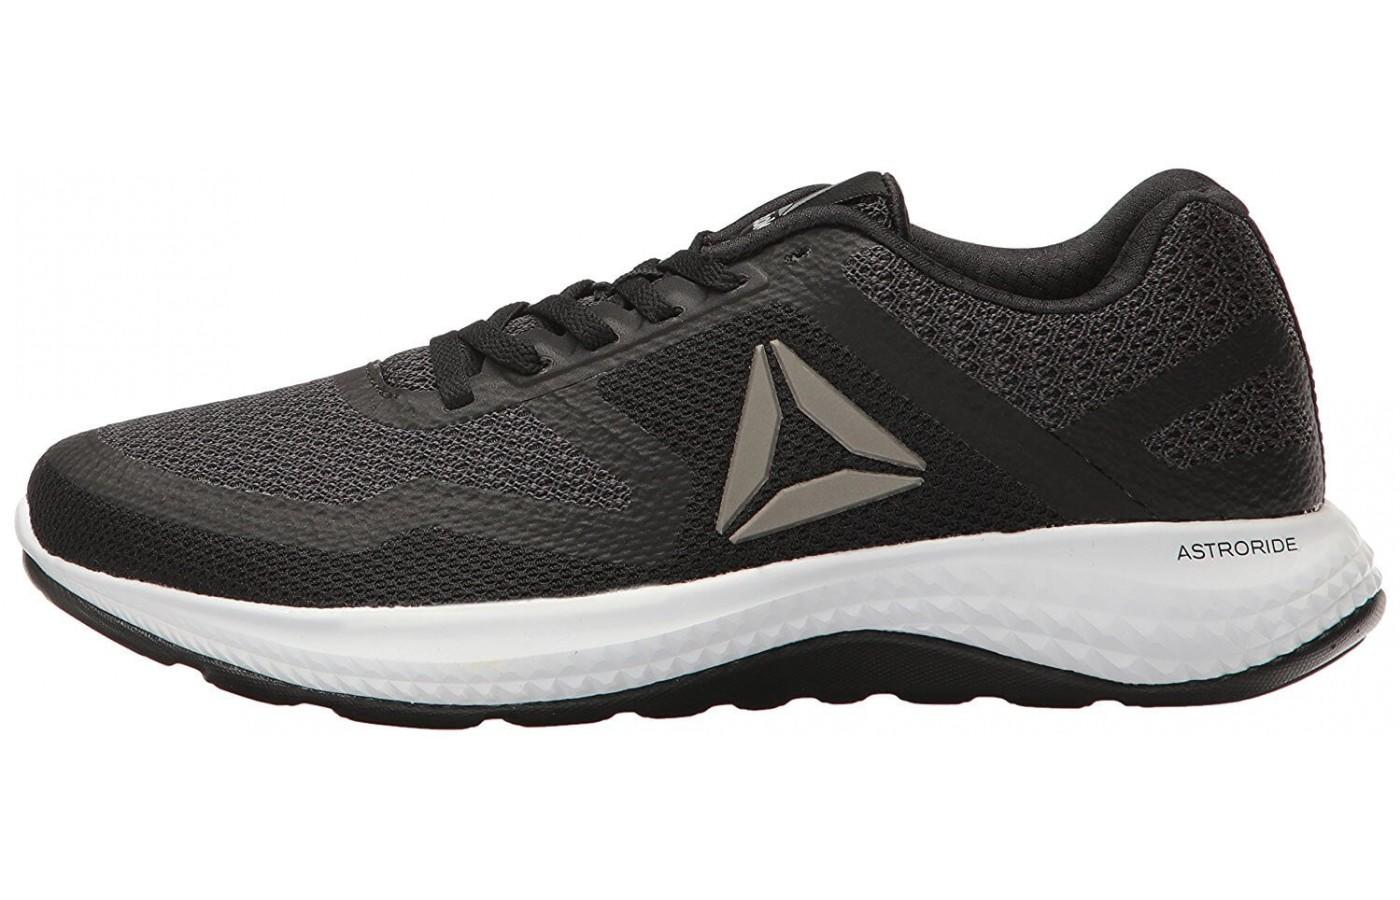 The Reebok Astroride 2D has the iconic Delta logo on the side